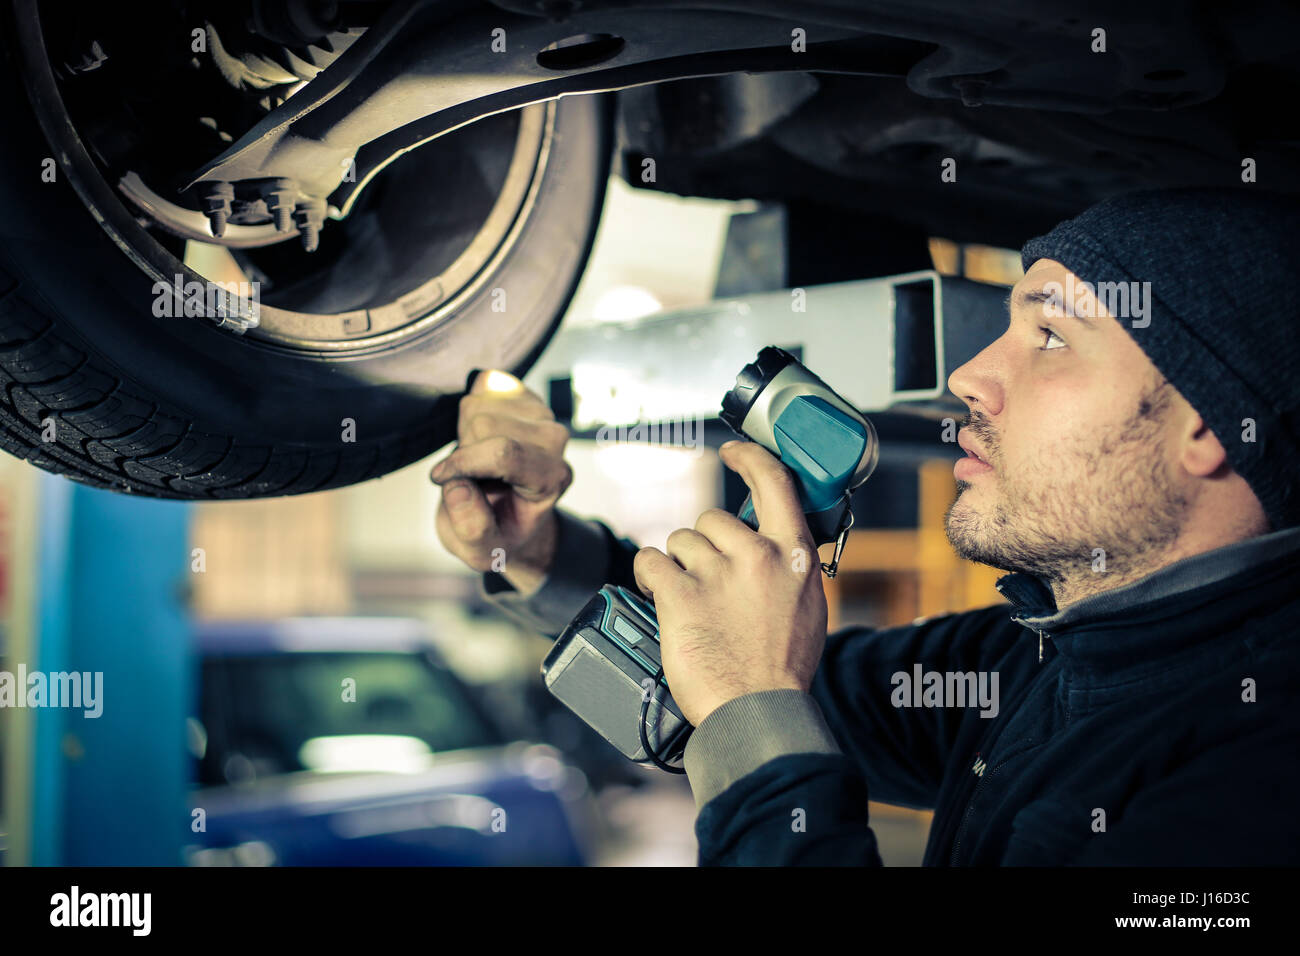 Mechanic man at work - Stock Image